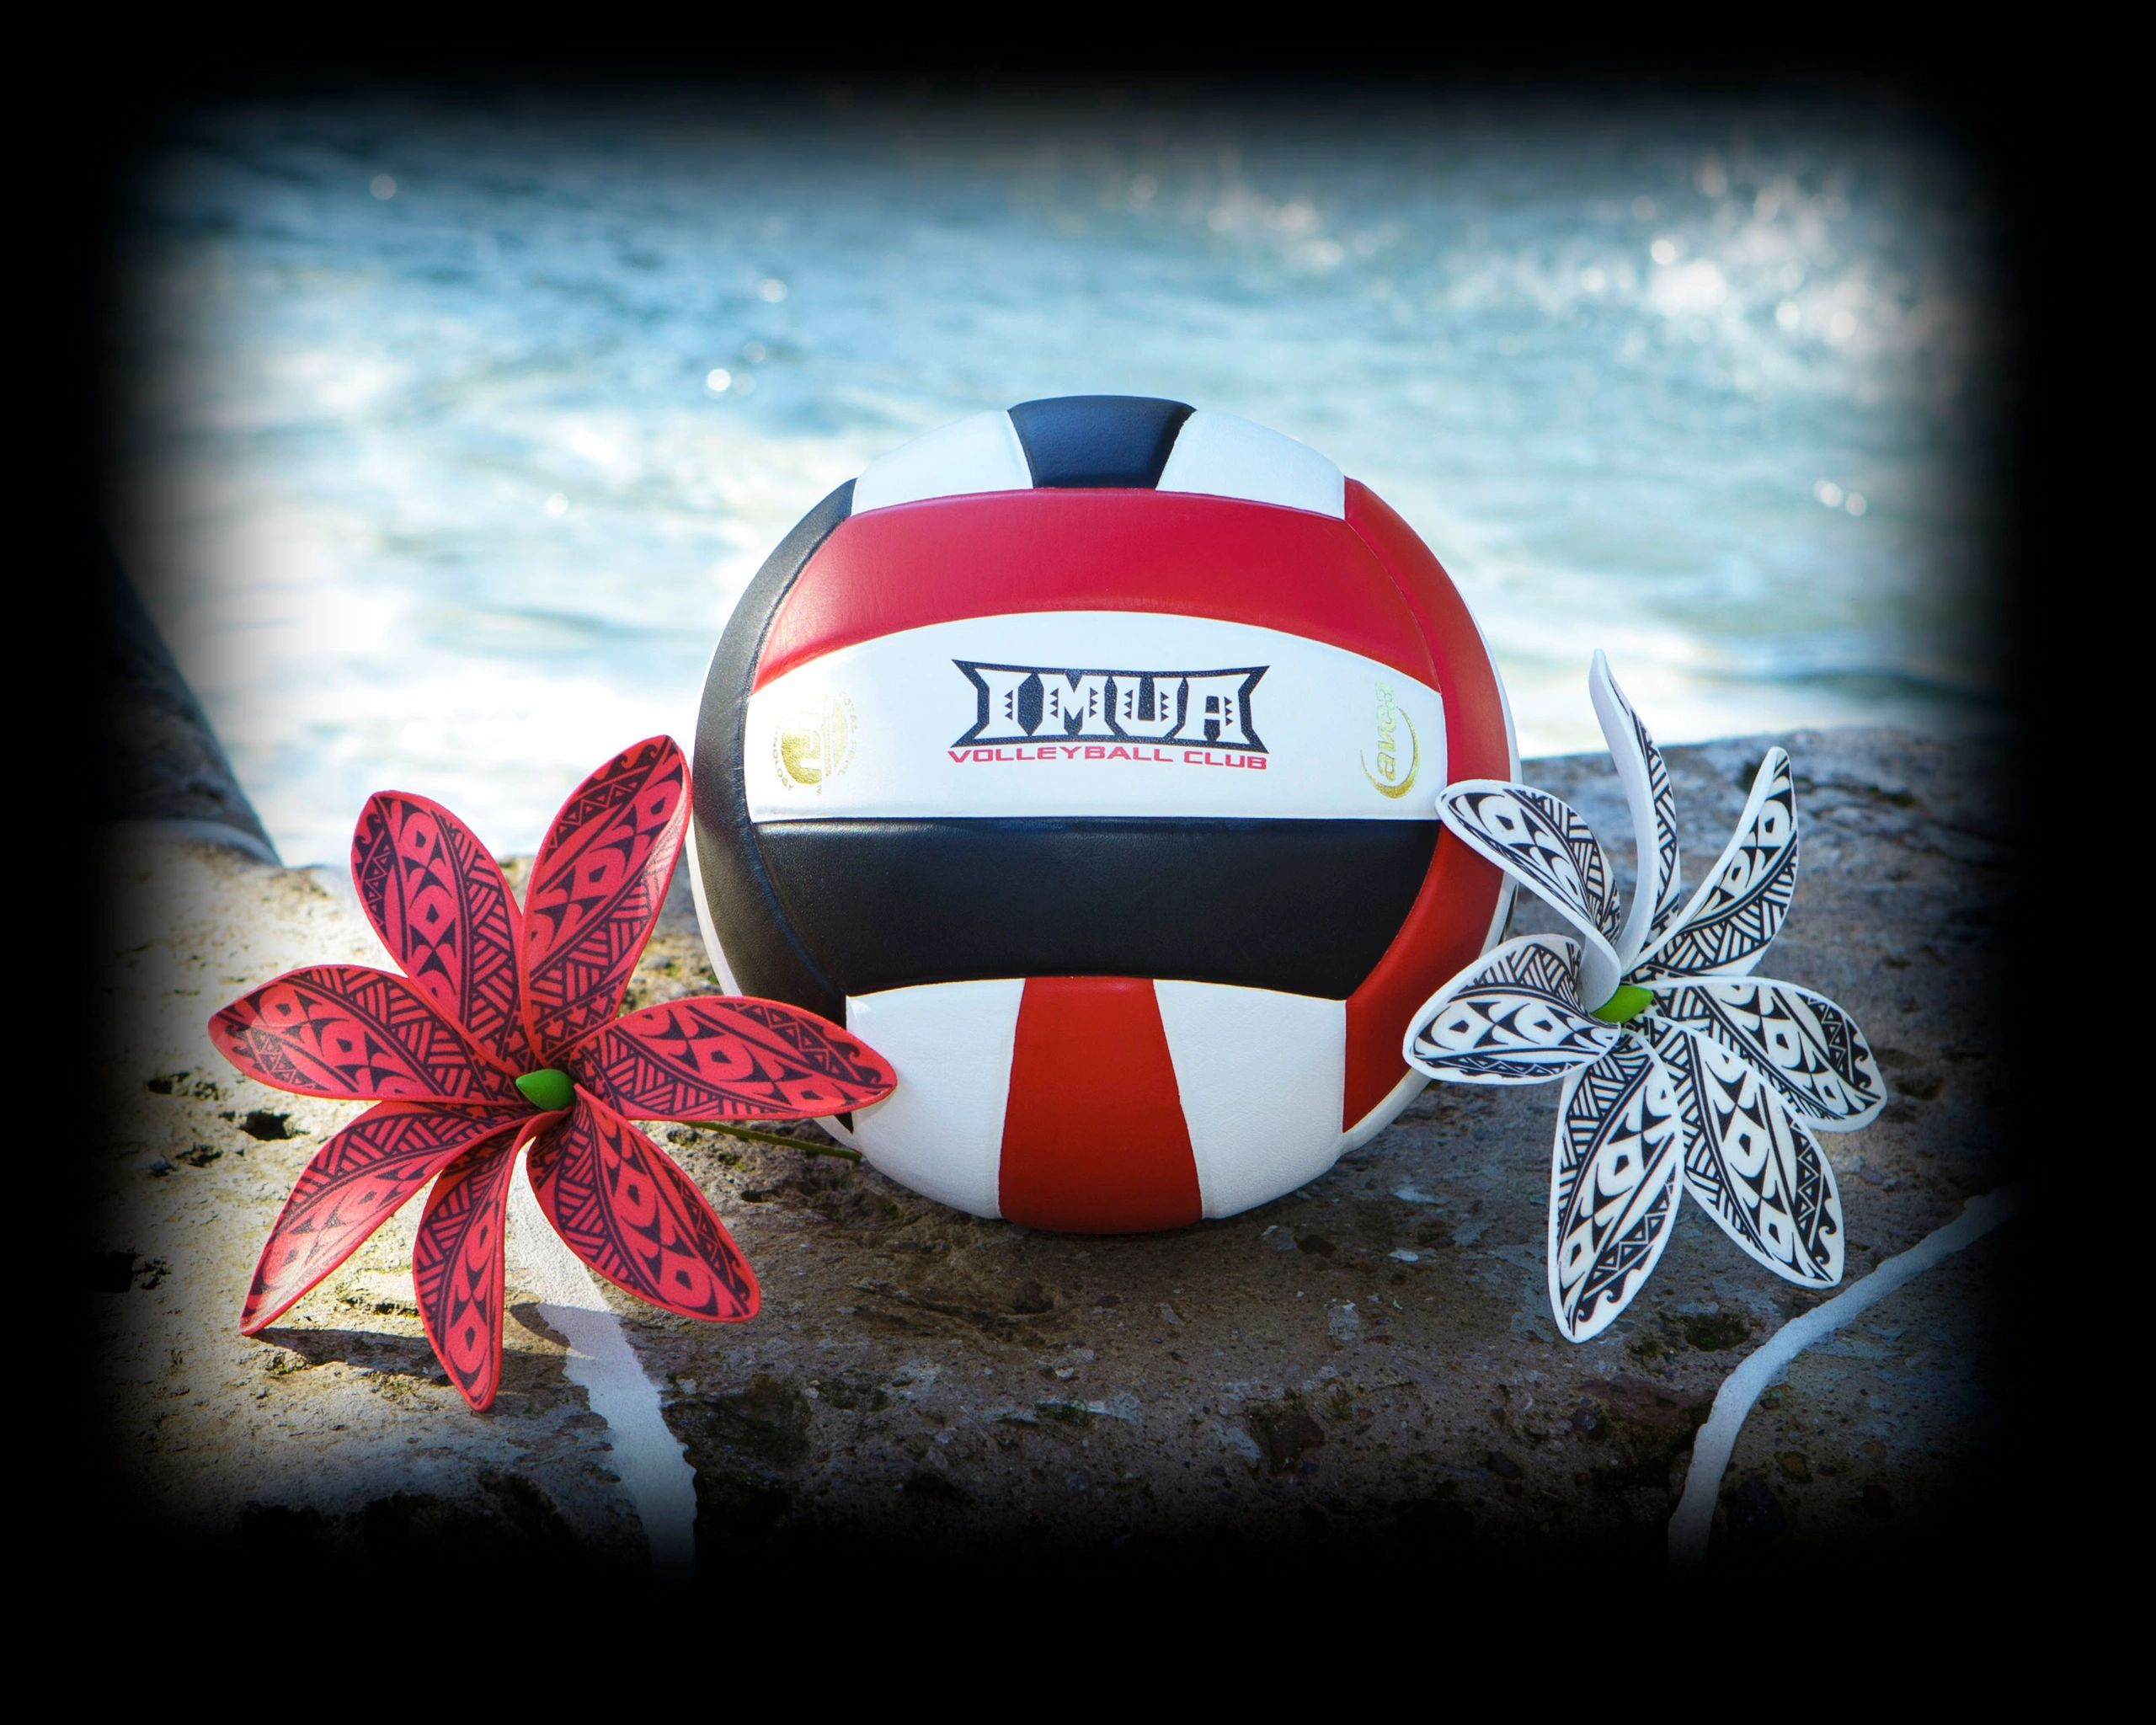 Tryouts | IMUA VOLLEYBALL CLUB